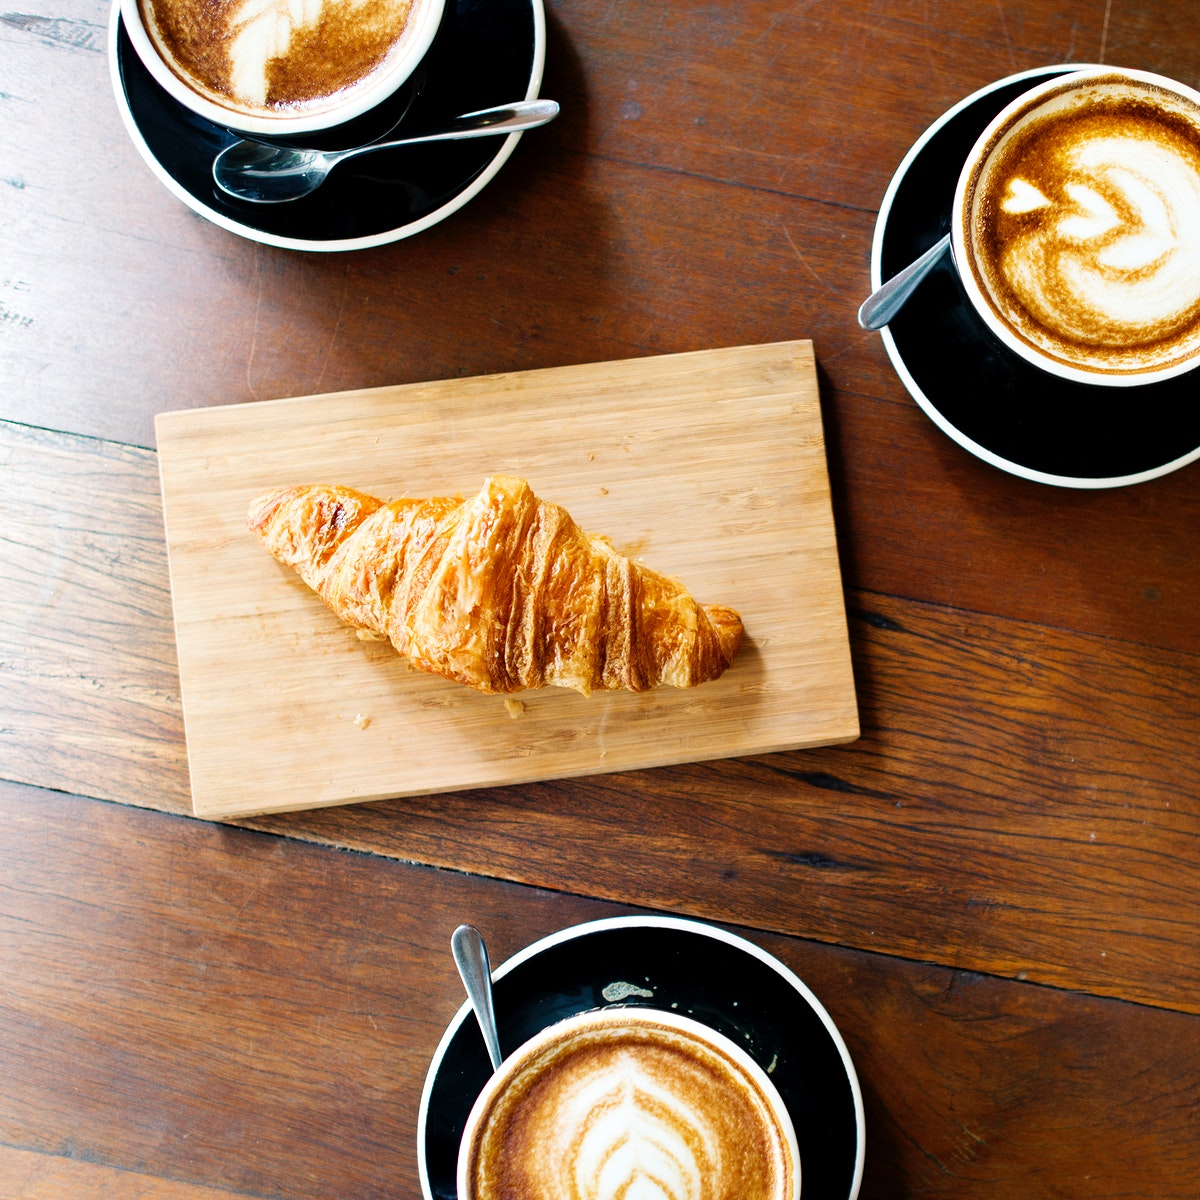 Aerial view of coffee cups and croissant on wooden table